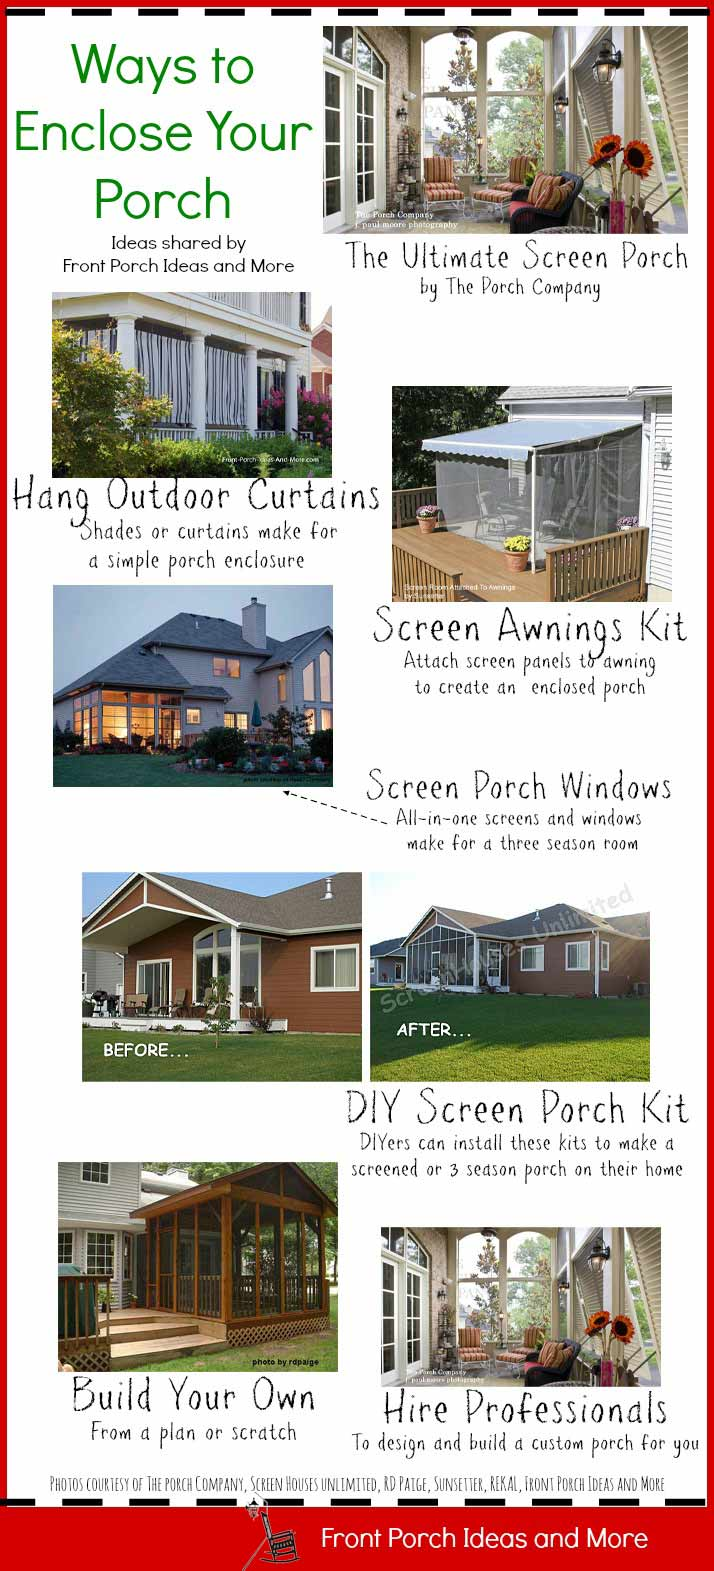 Porch enclosures ten great ideas to consider if you want an enclosed porch here are some ways to achieve that from solutioingenieria